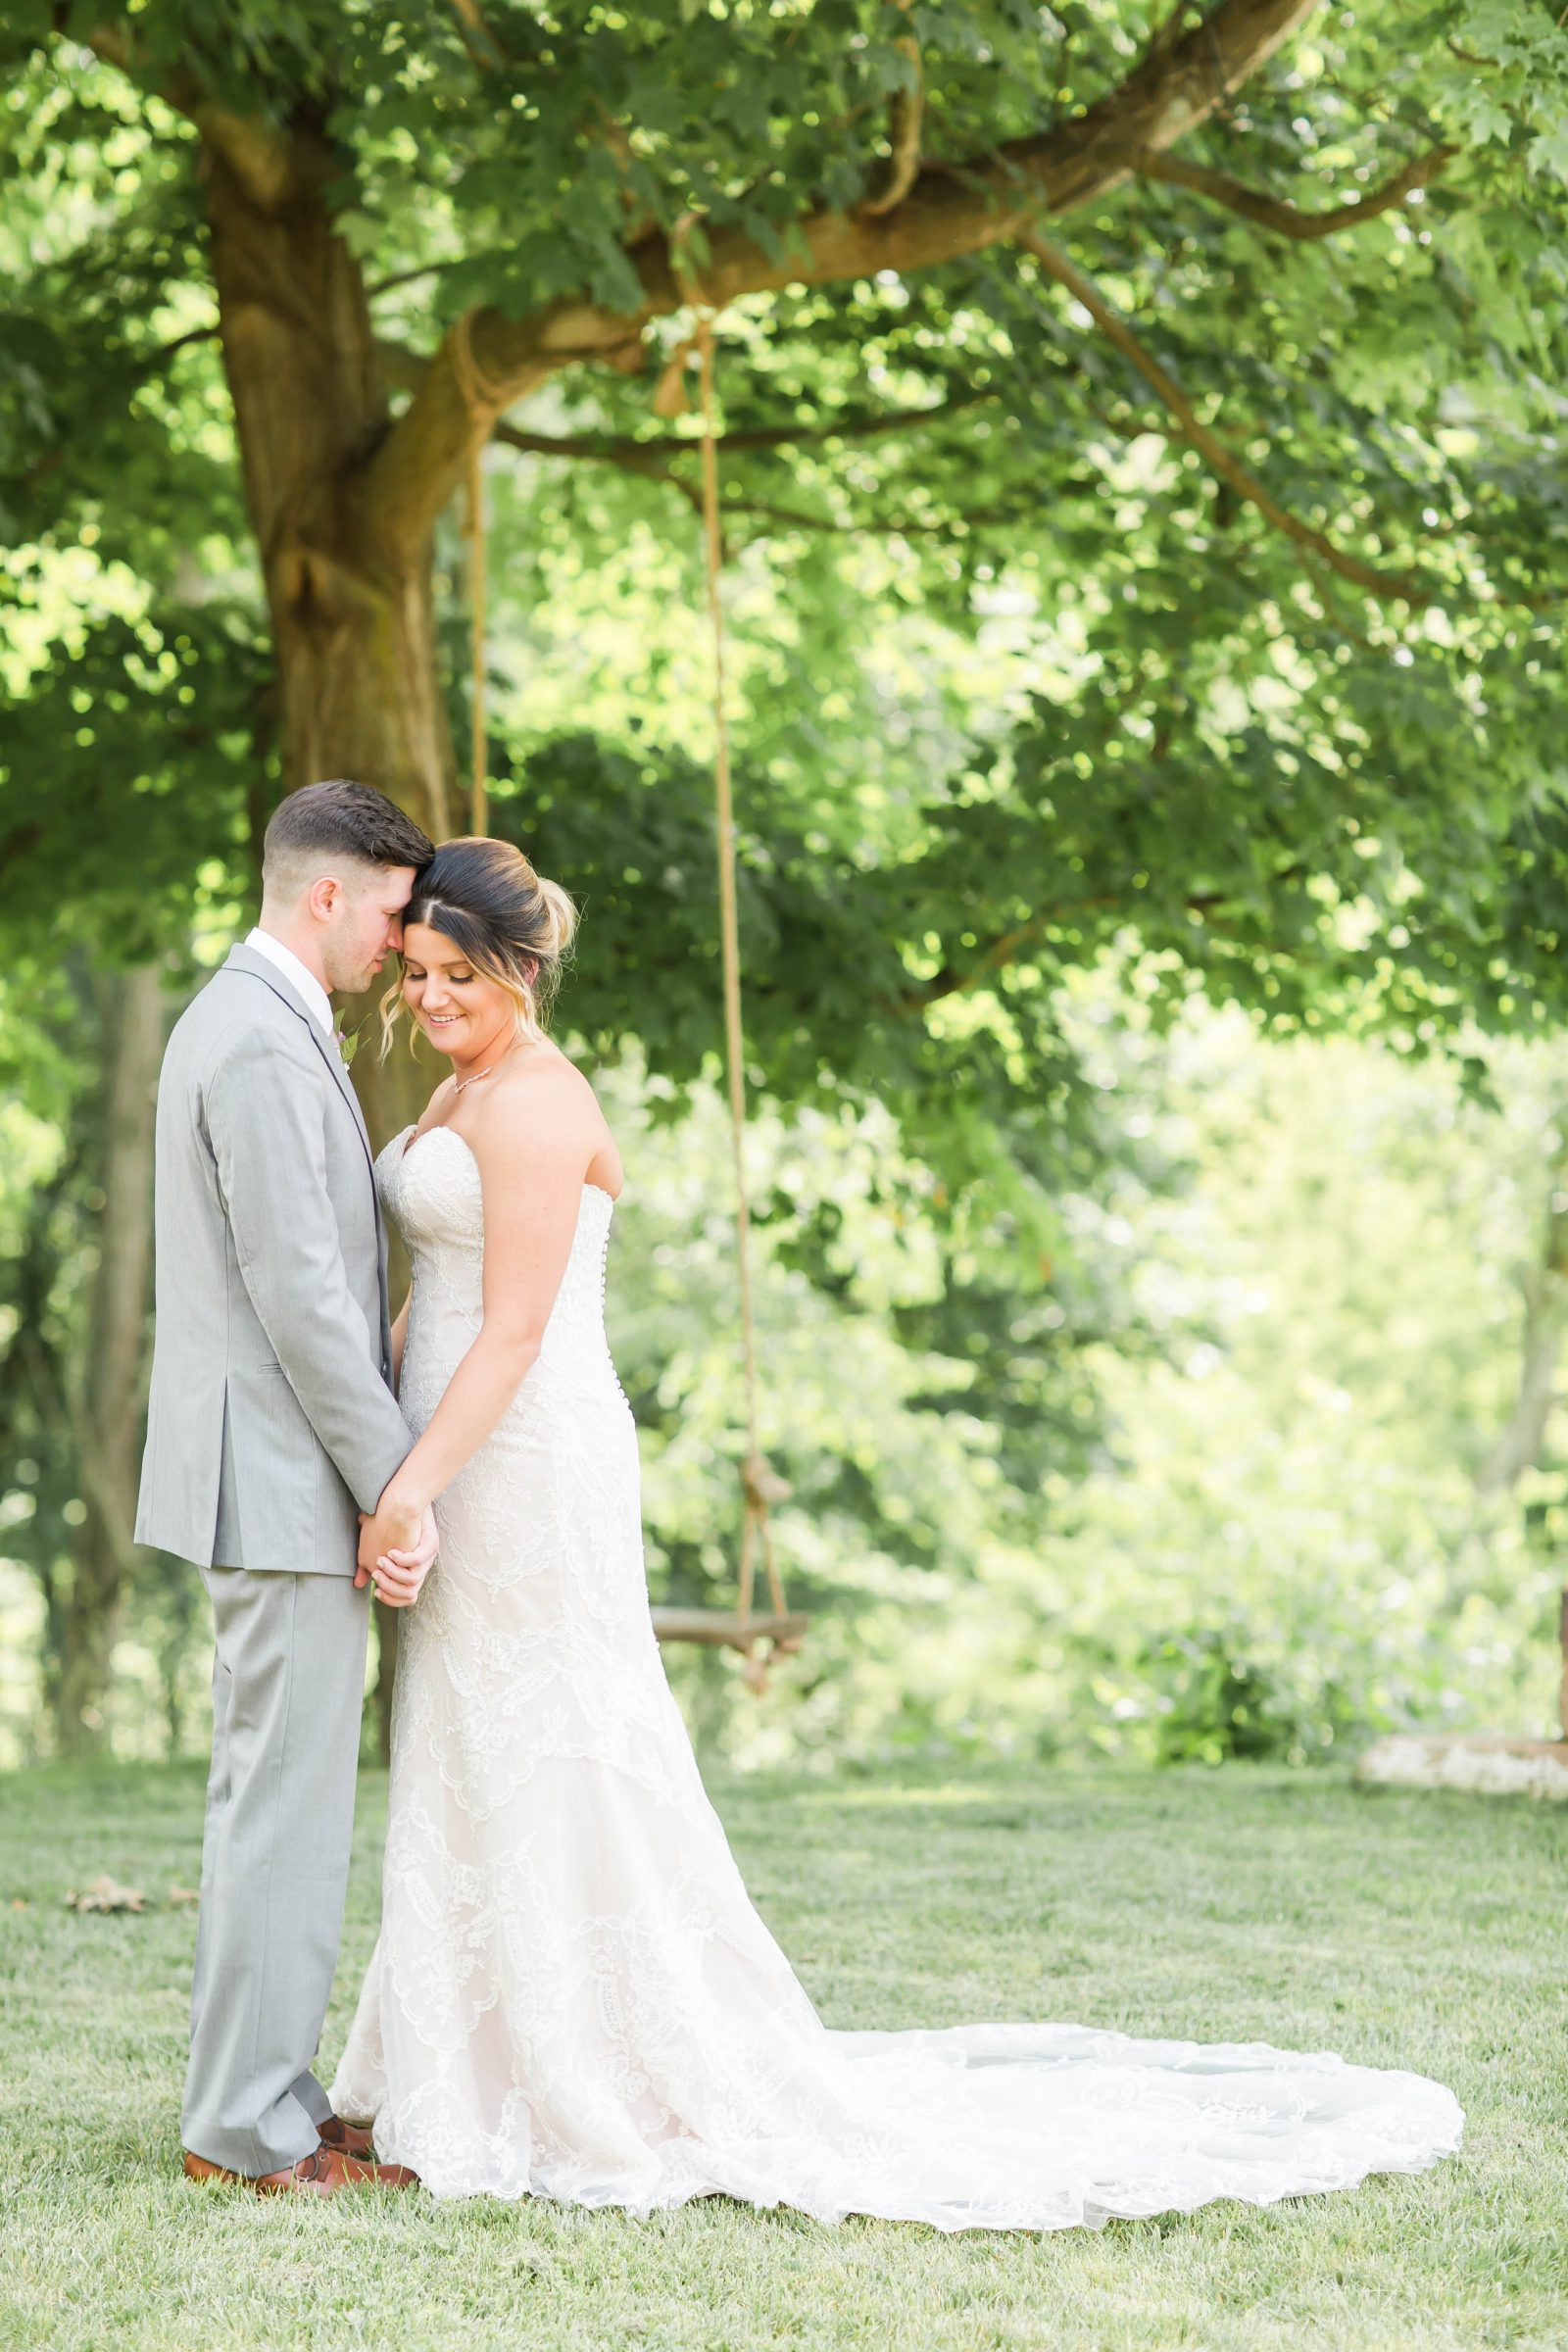 rivercrest-farm-summer-wedding-loren-jackson-photography-39